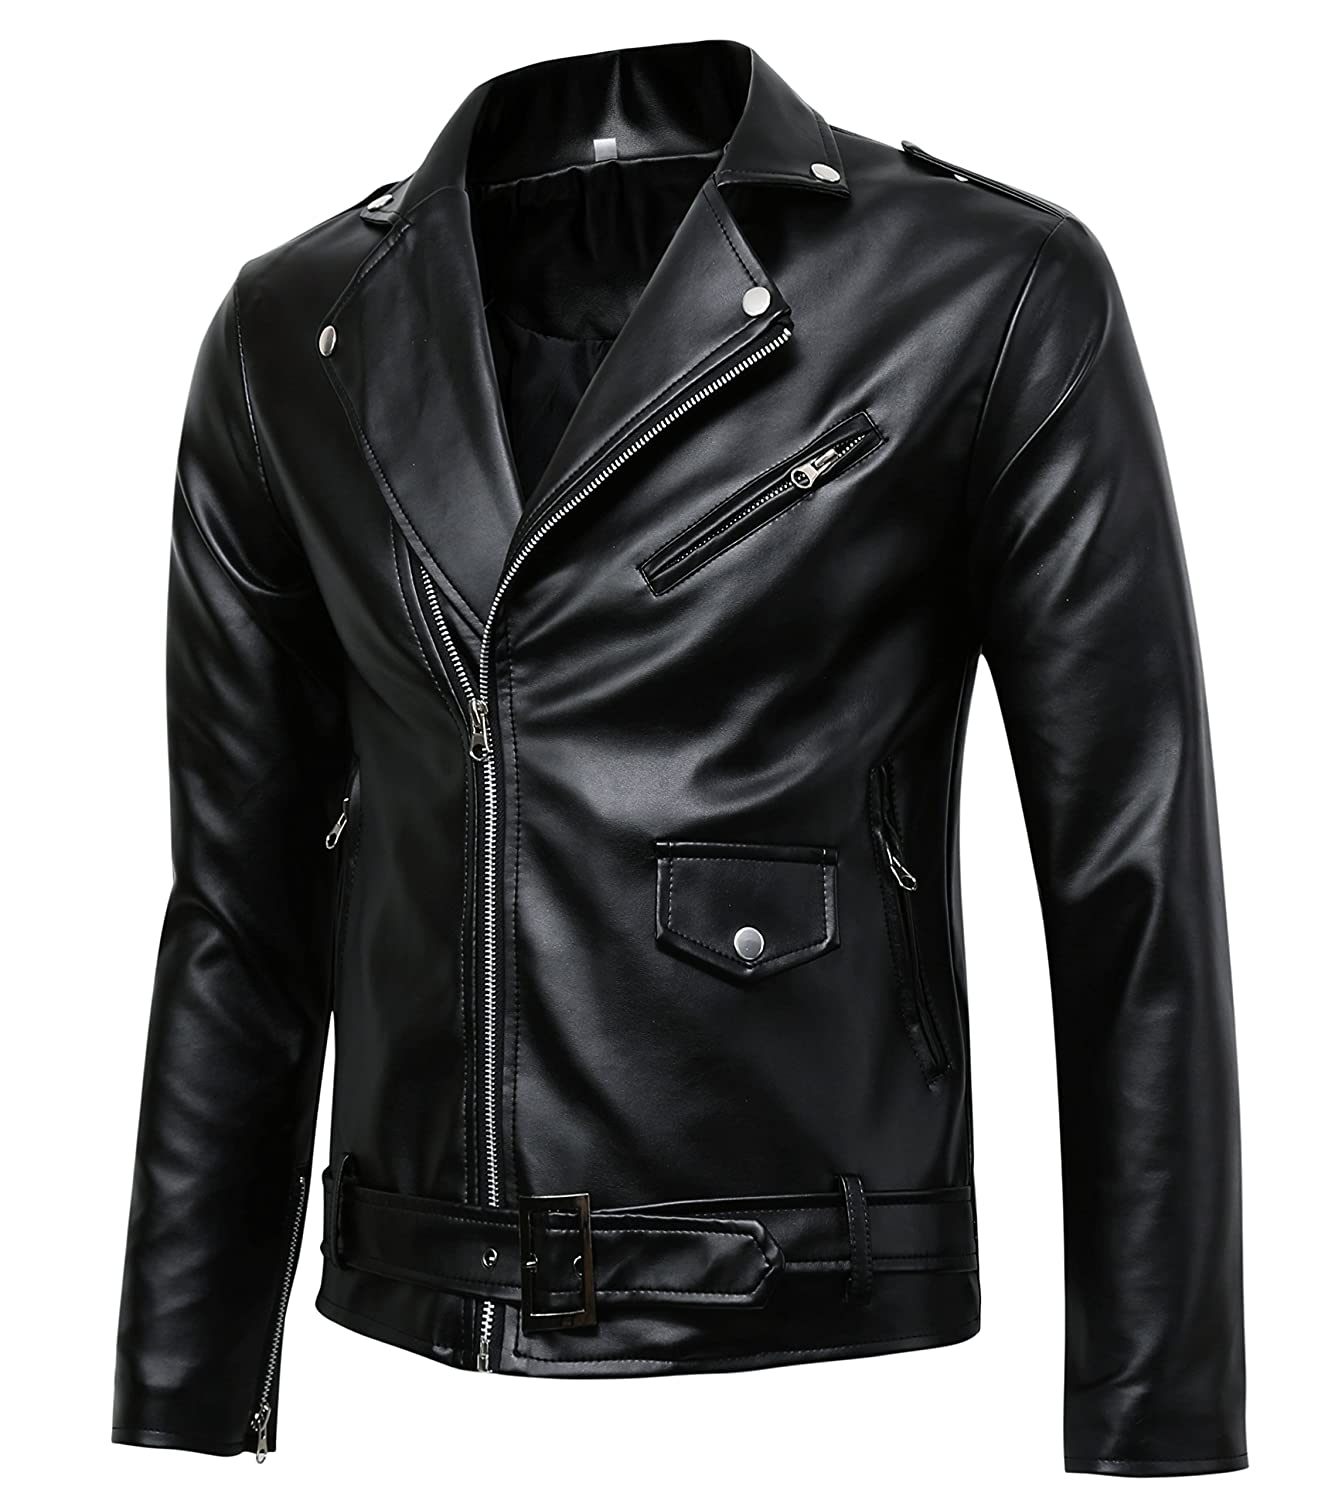 Men's Classic Police Style Faux Leather Motorcycle Jacket